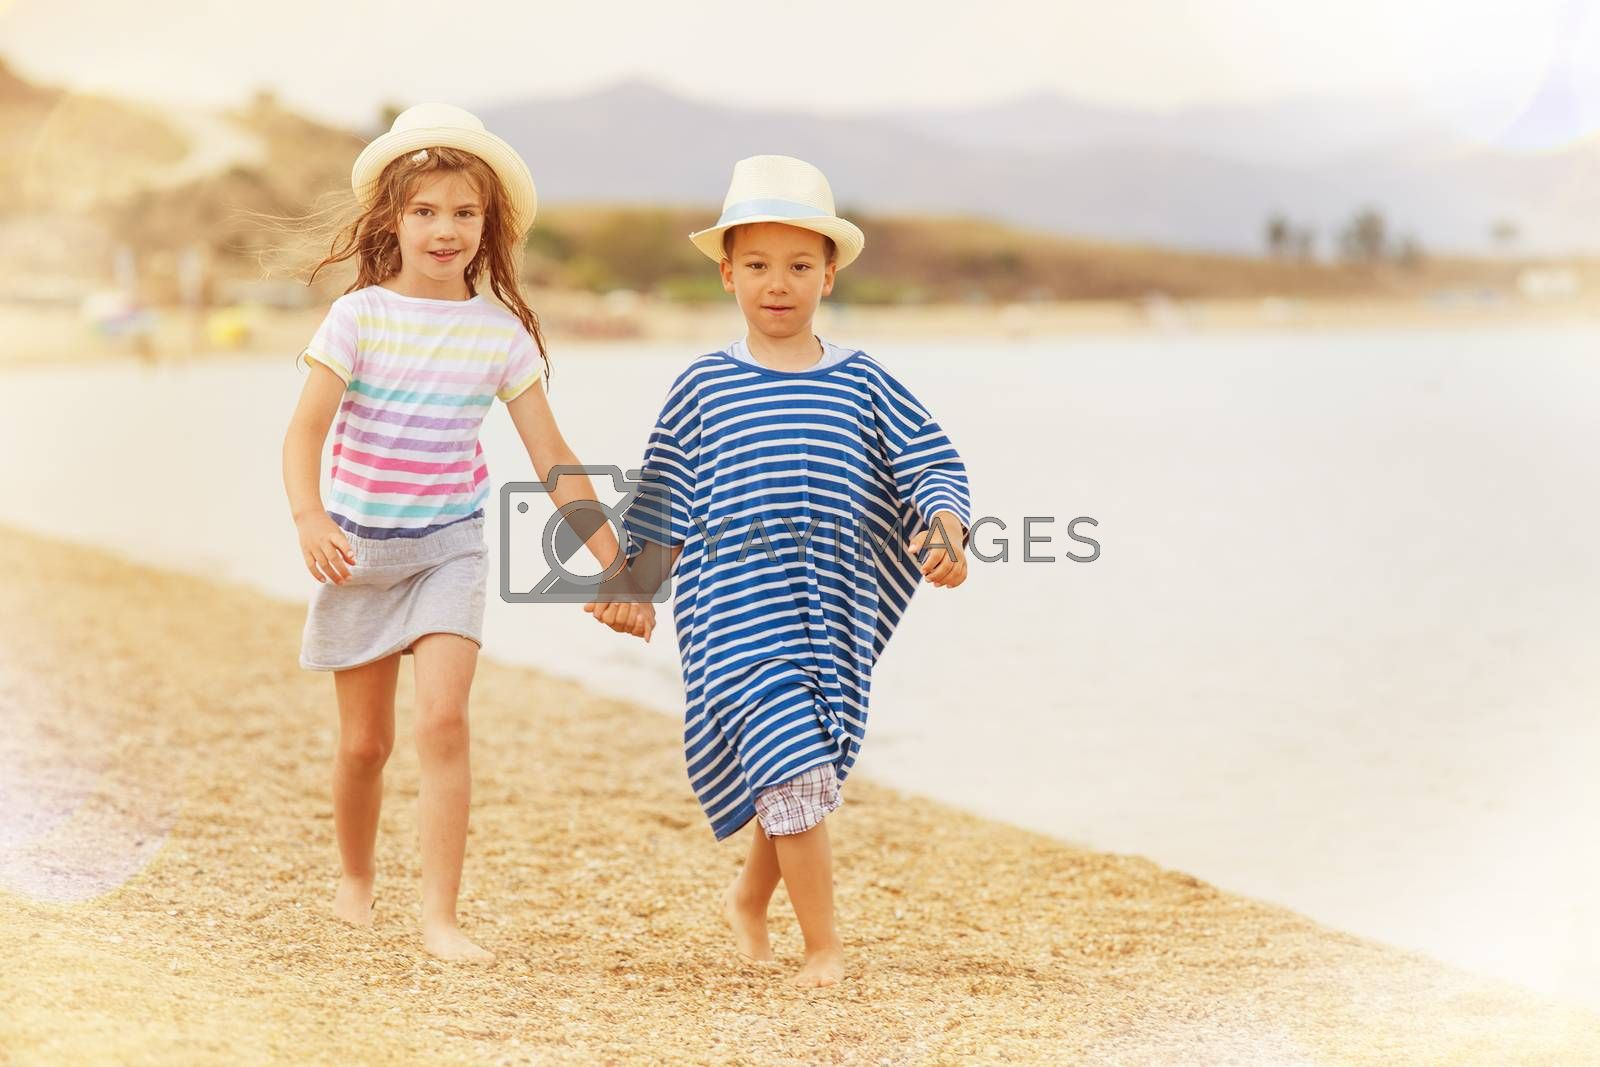 A boy and a girl around six holding hands while taking a walk on the beach smiling.